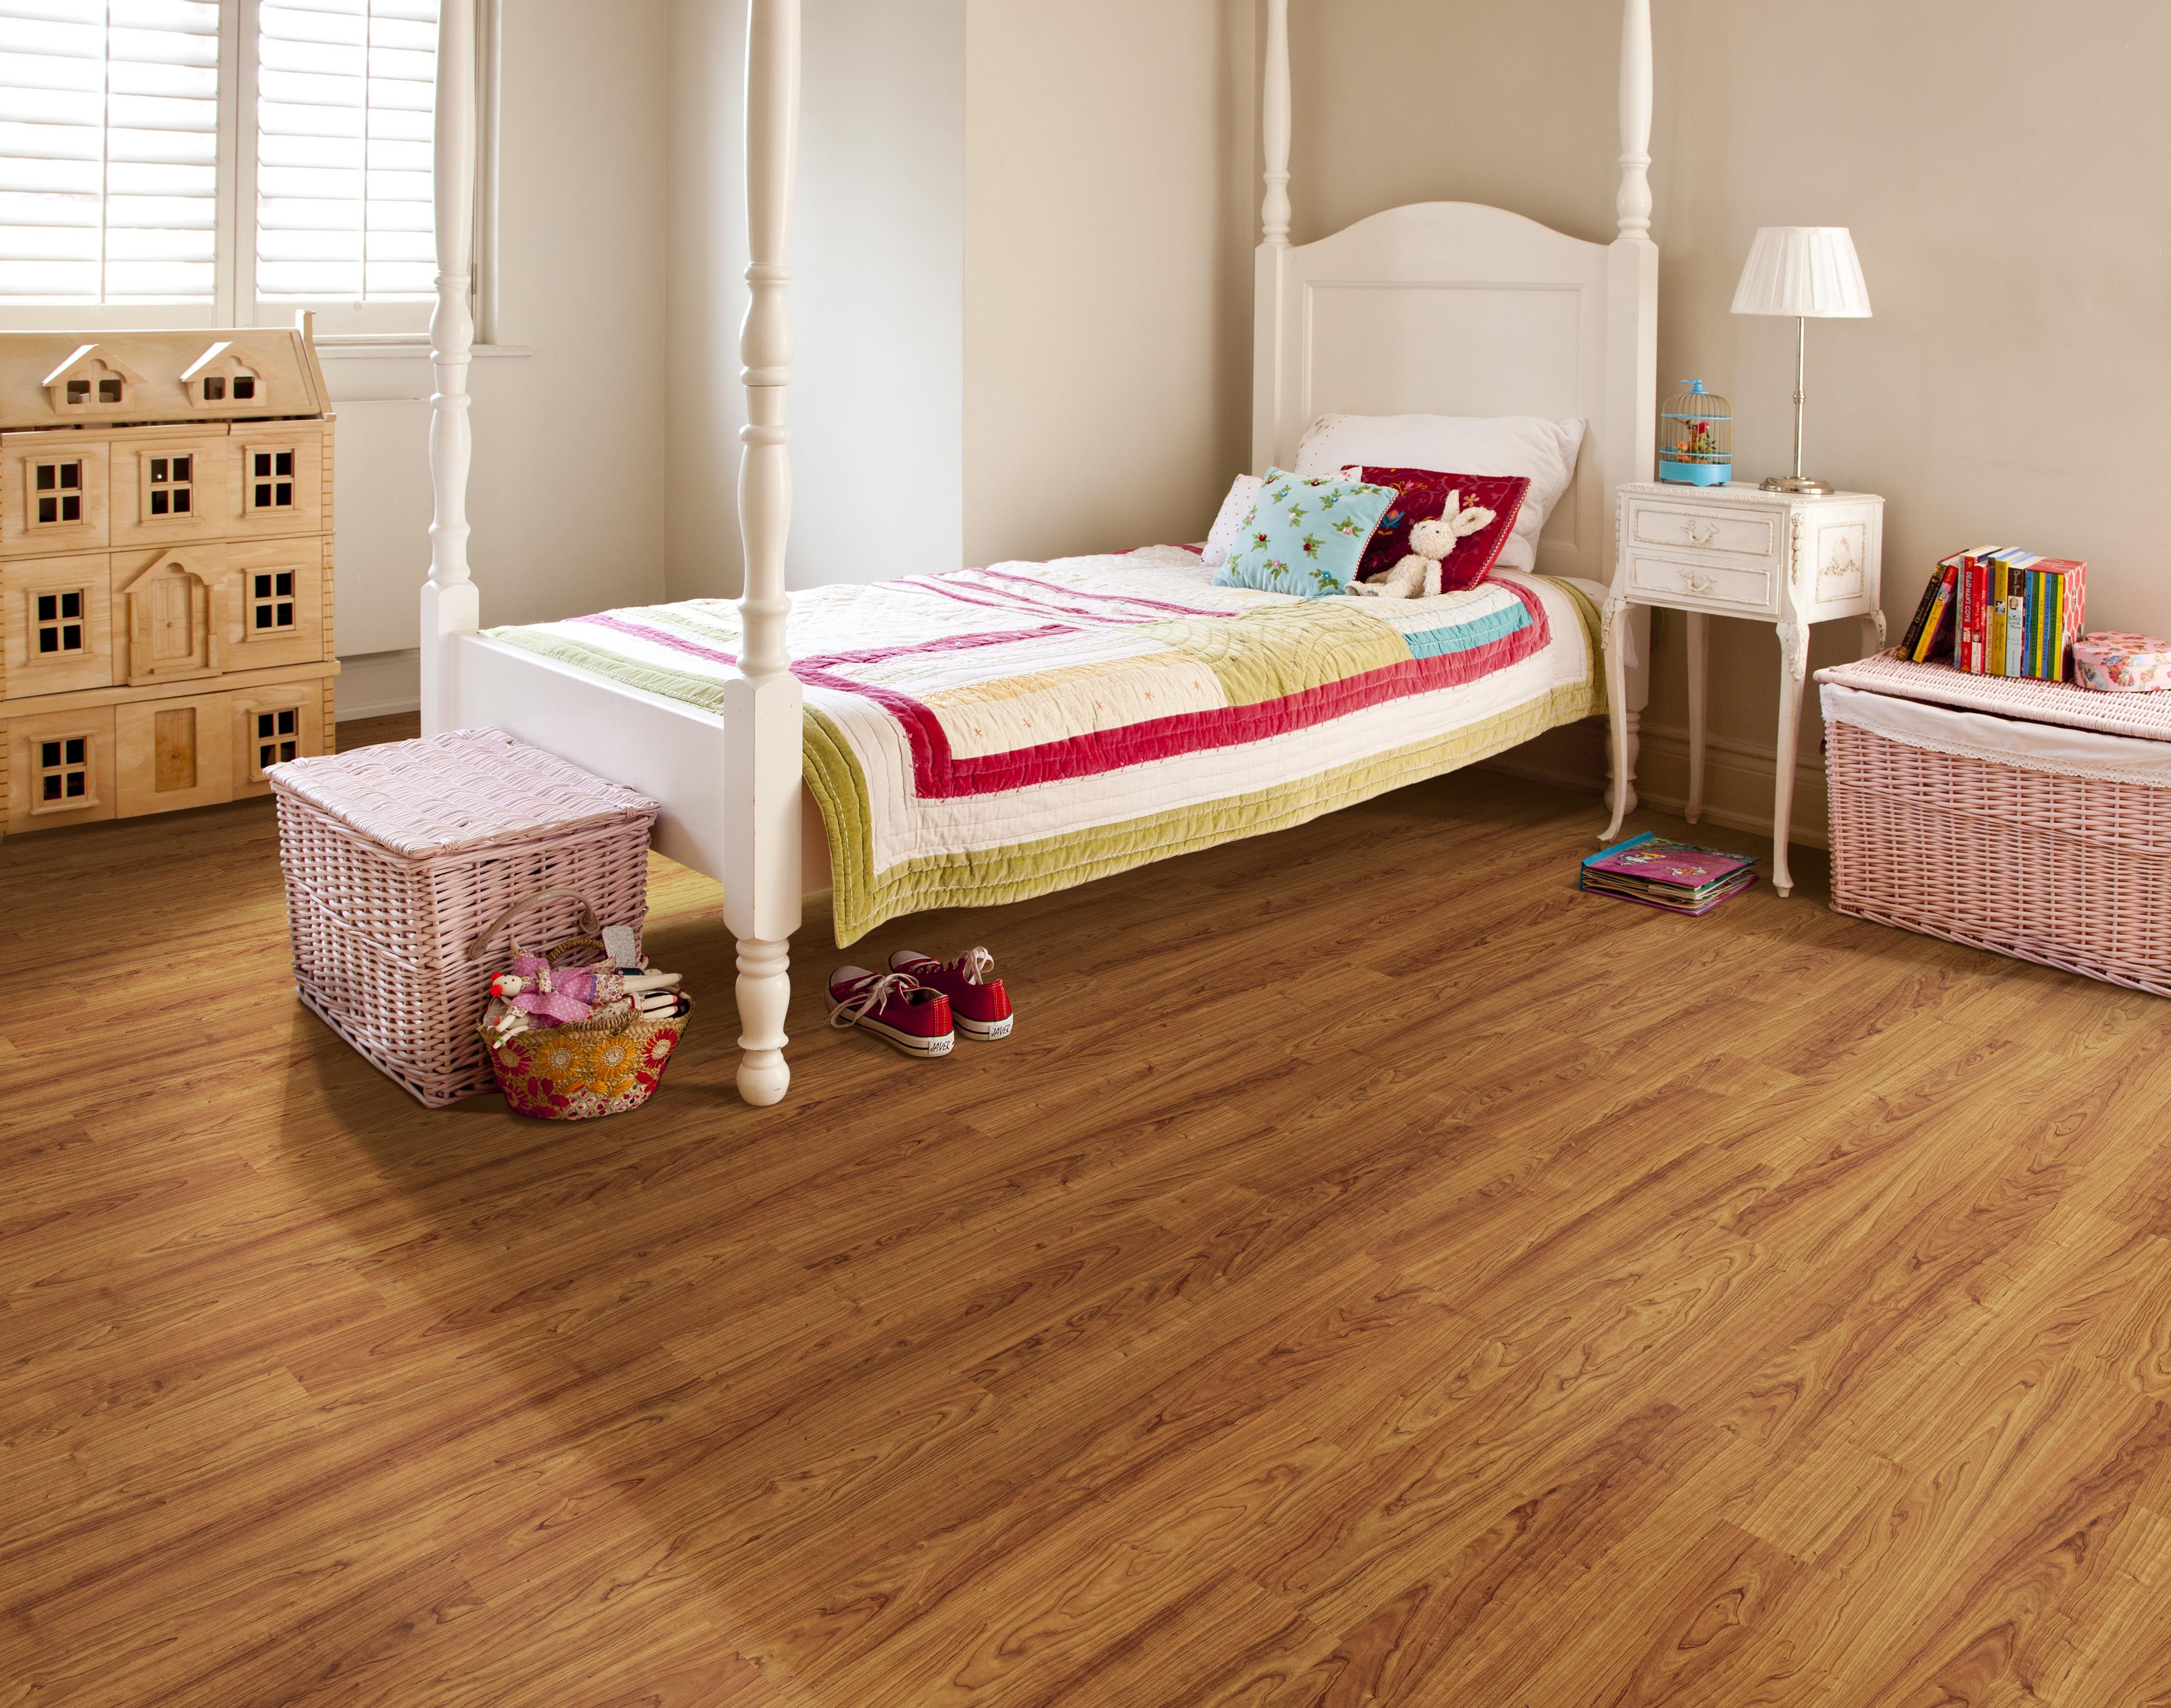 Ivc S Lvt Flooring Is Perfect For Your Children S Rooms Durable But Elegant Rio Cherry 20473 Luxury Viny Vinyl Flooring Vinyl Flooring Uk Luxury Vinyl Tile